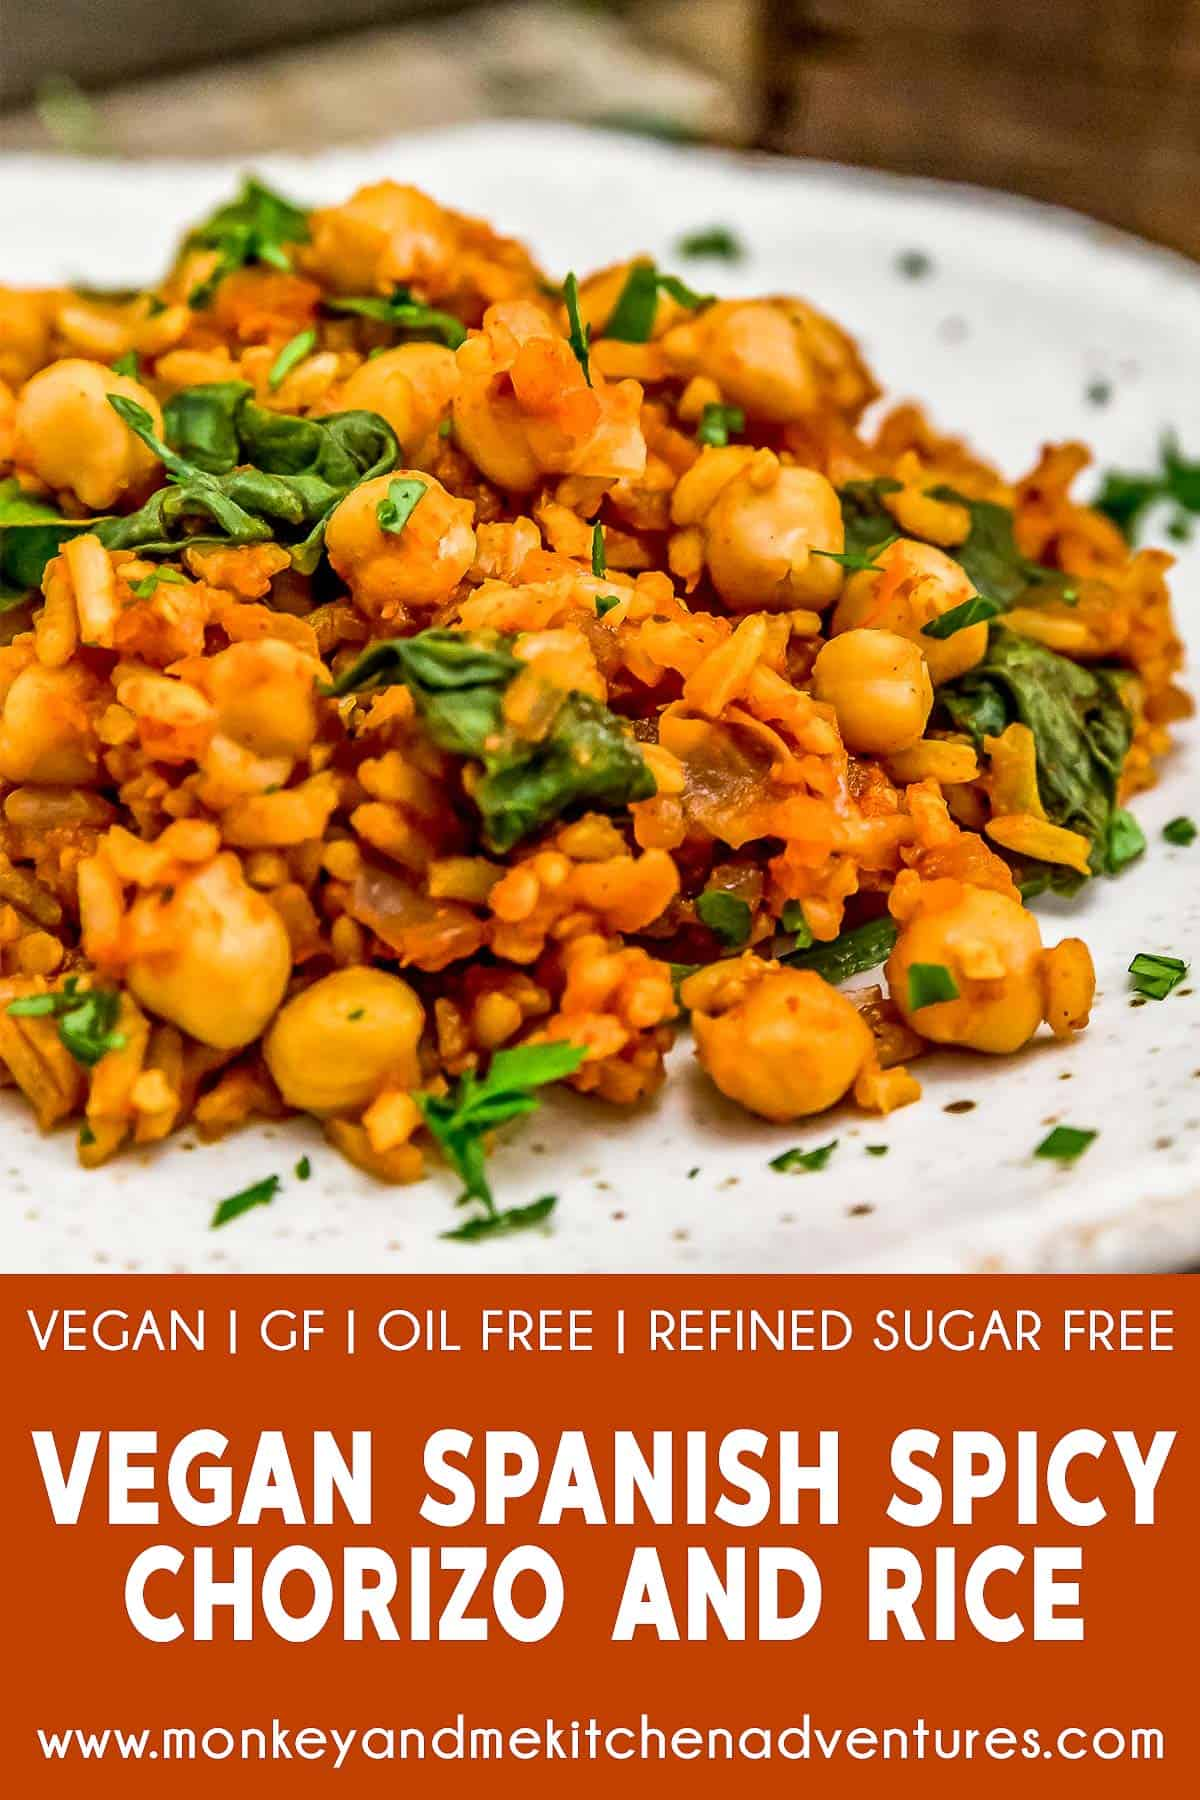 "Vegan Spanish Spicy ""Chorizo"" and Rice with text description"